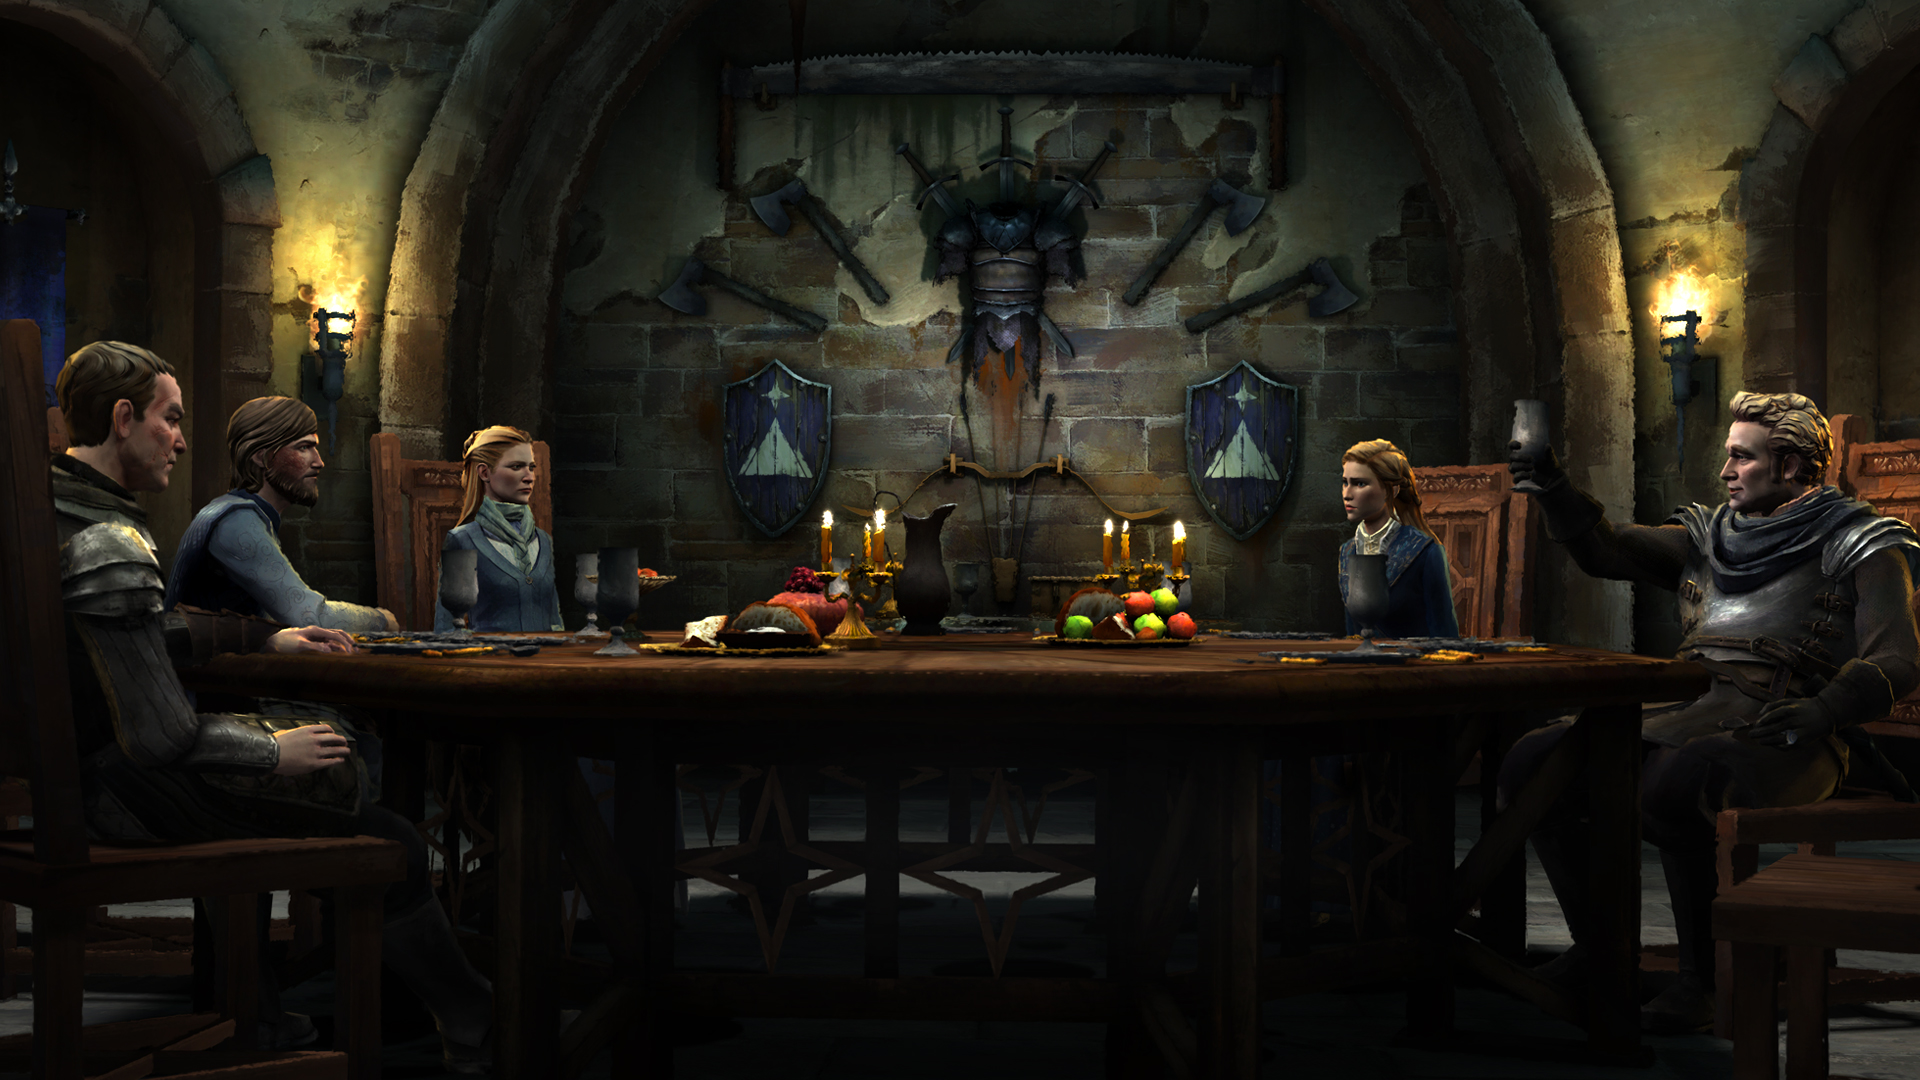 Game of Thrones - A Telltale Games Series image 3